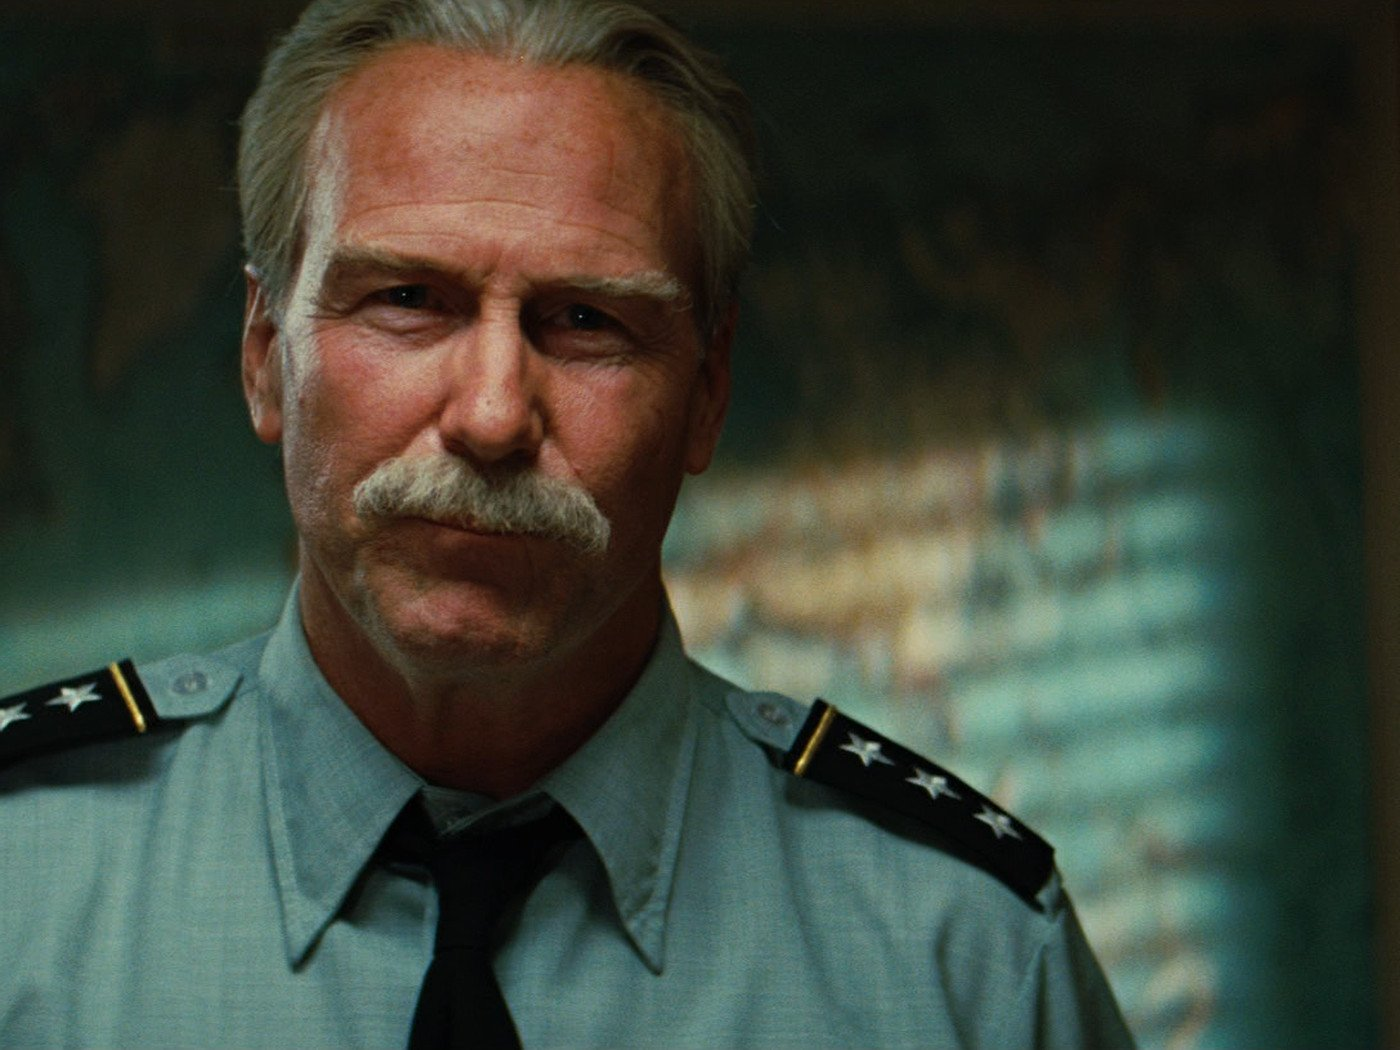 GeneralRoss TIH 10 Things You Probably Didn't Know About William Hurt